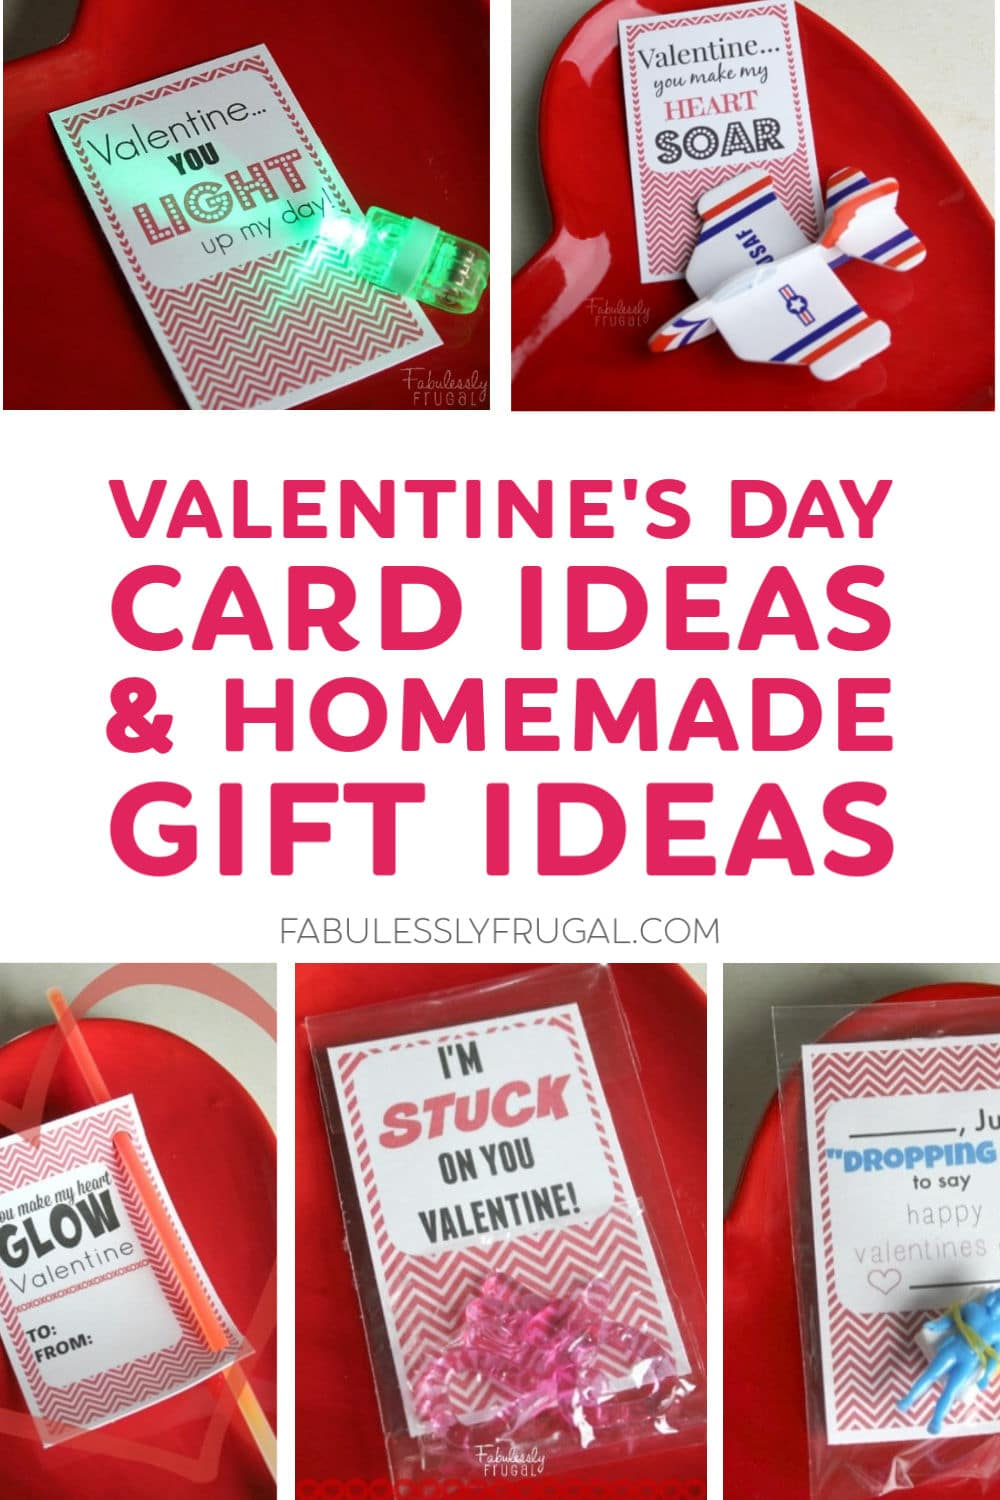 Valentine's day card ideas and homemade gifts